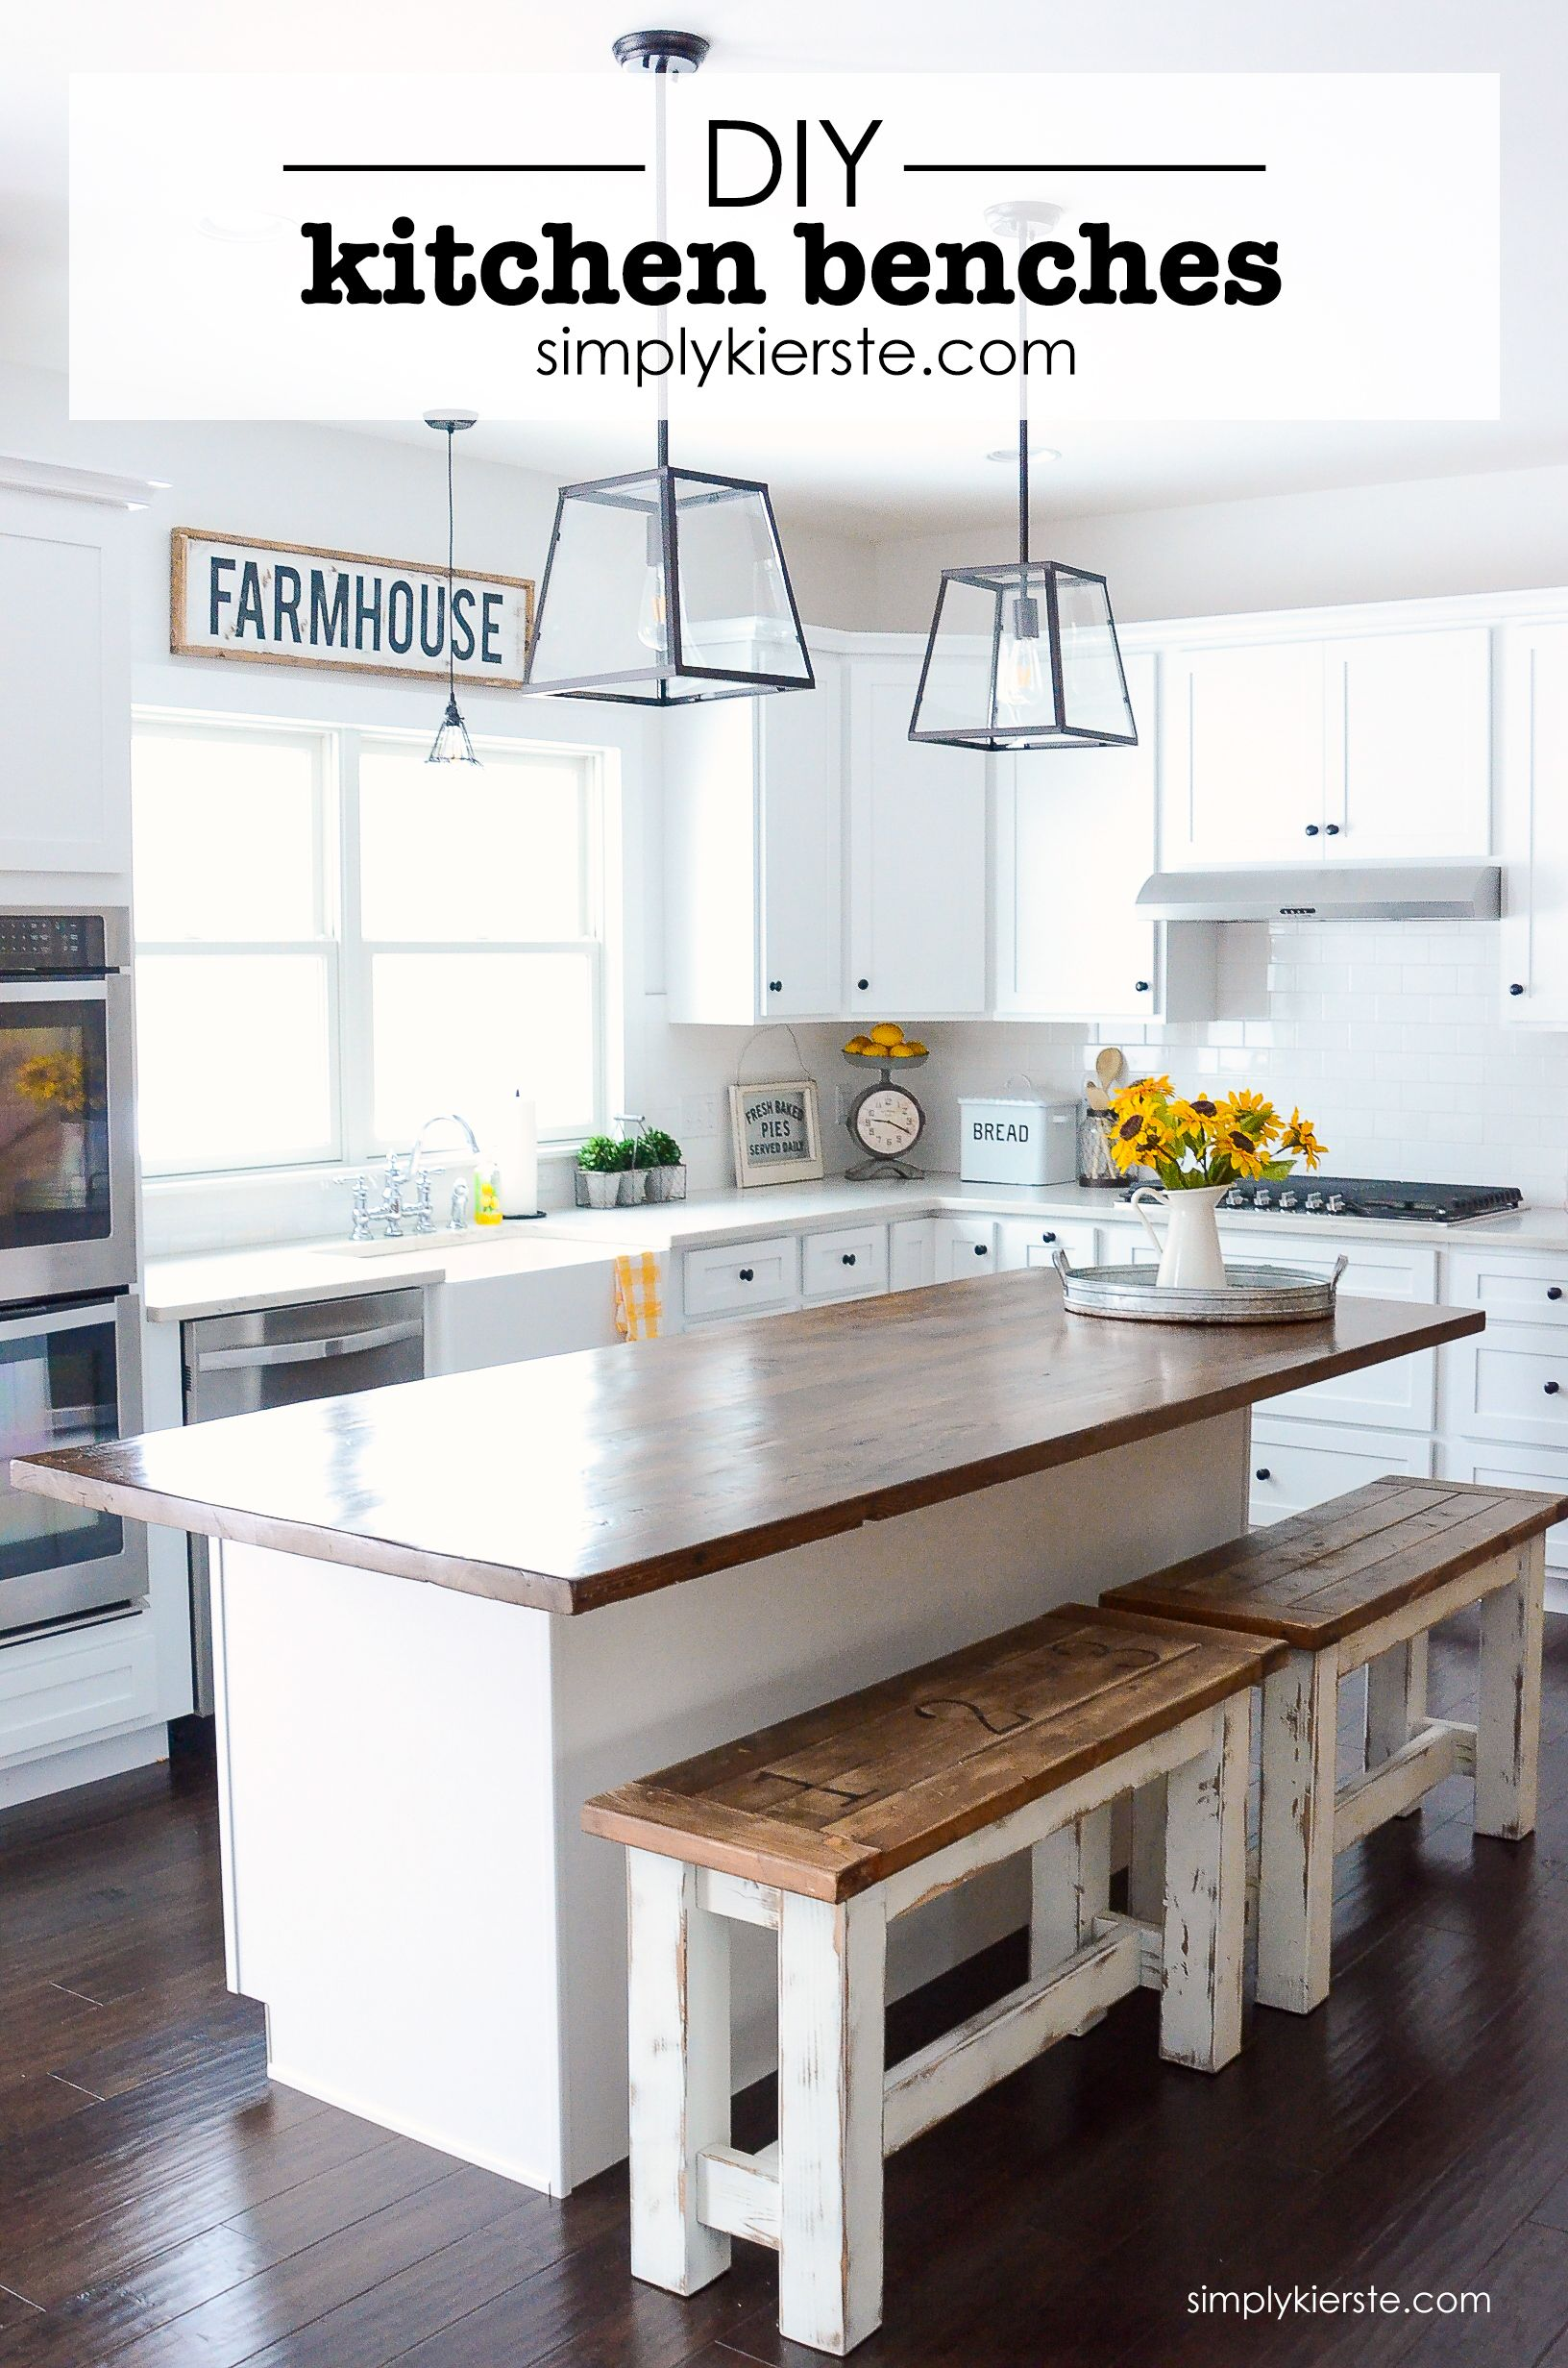 kitchen benches sink spray hose diy budget ideas farmhouse style these charming are perfect up at your island they re easy to make clean and give you extra seating space